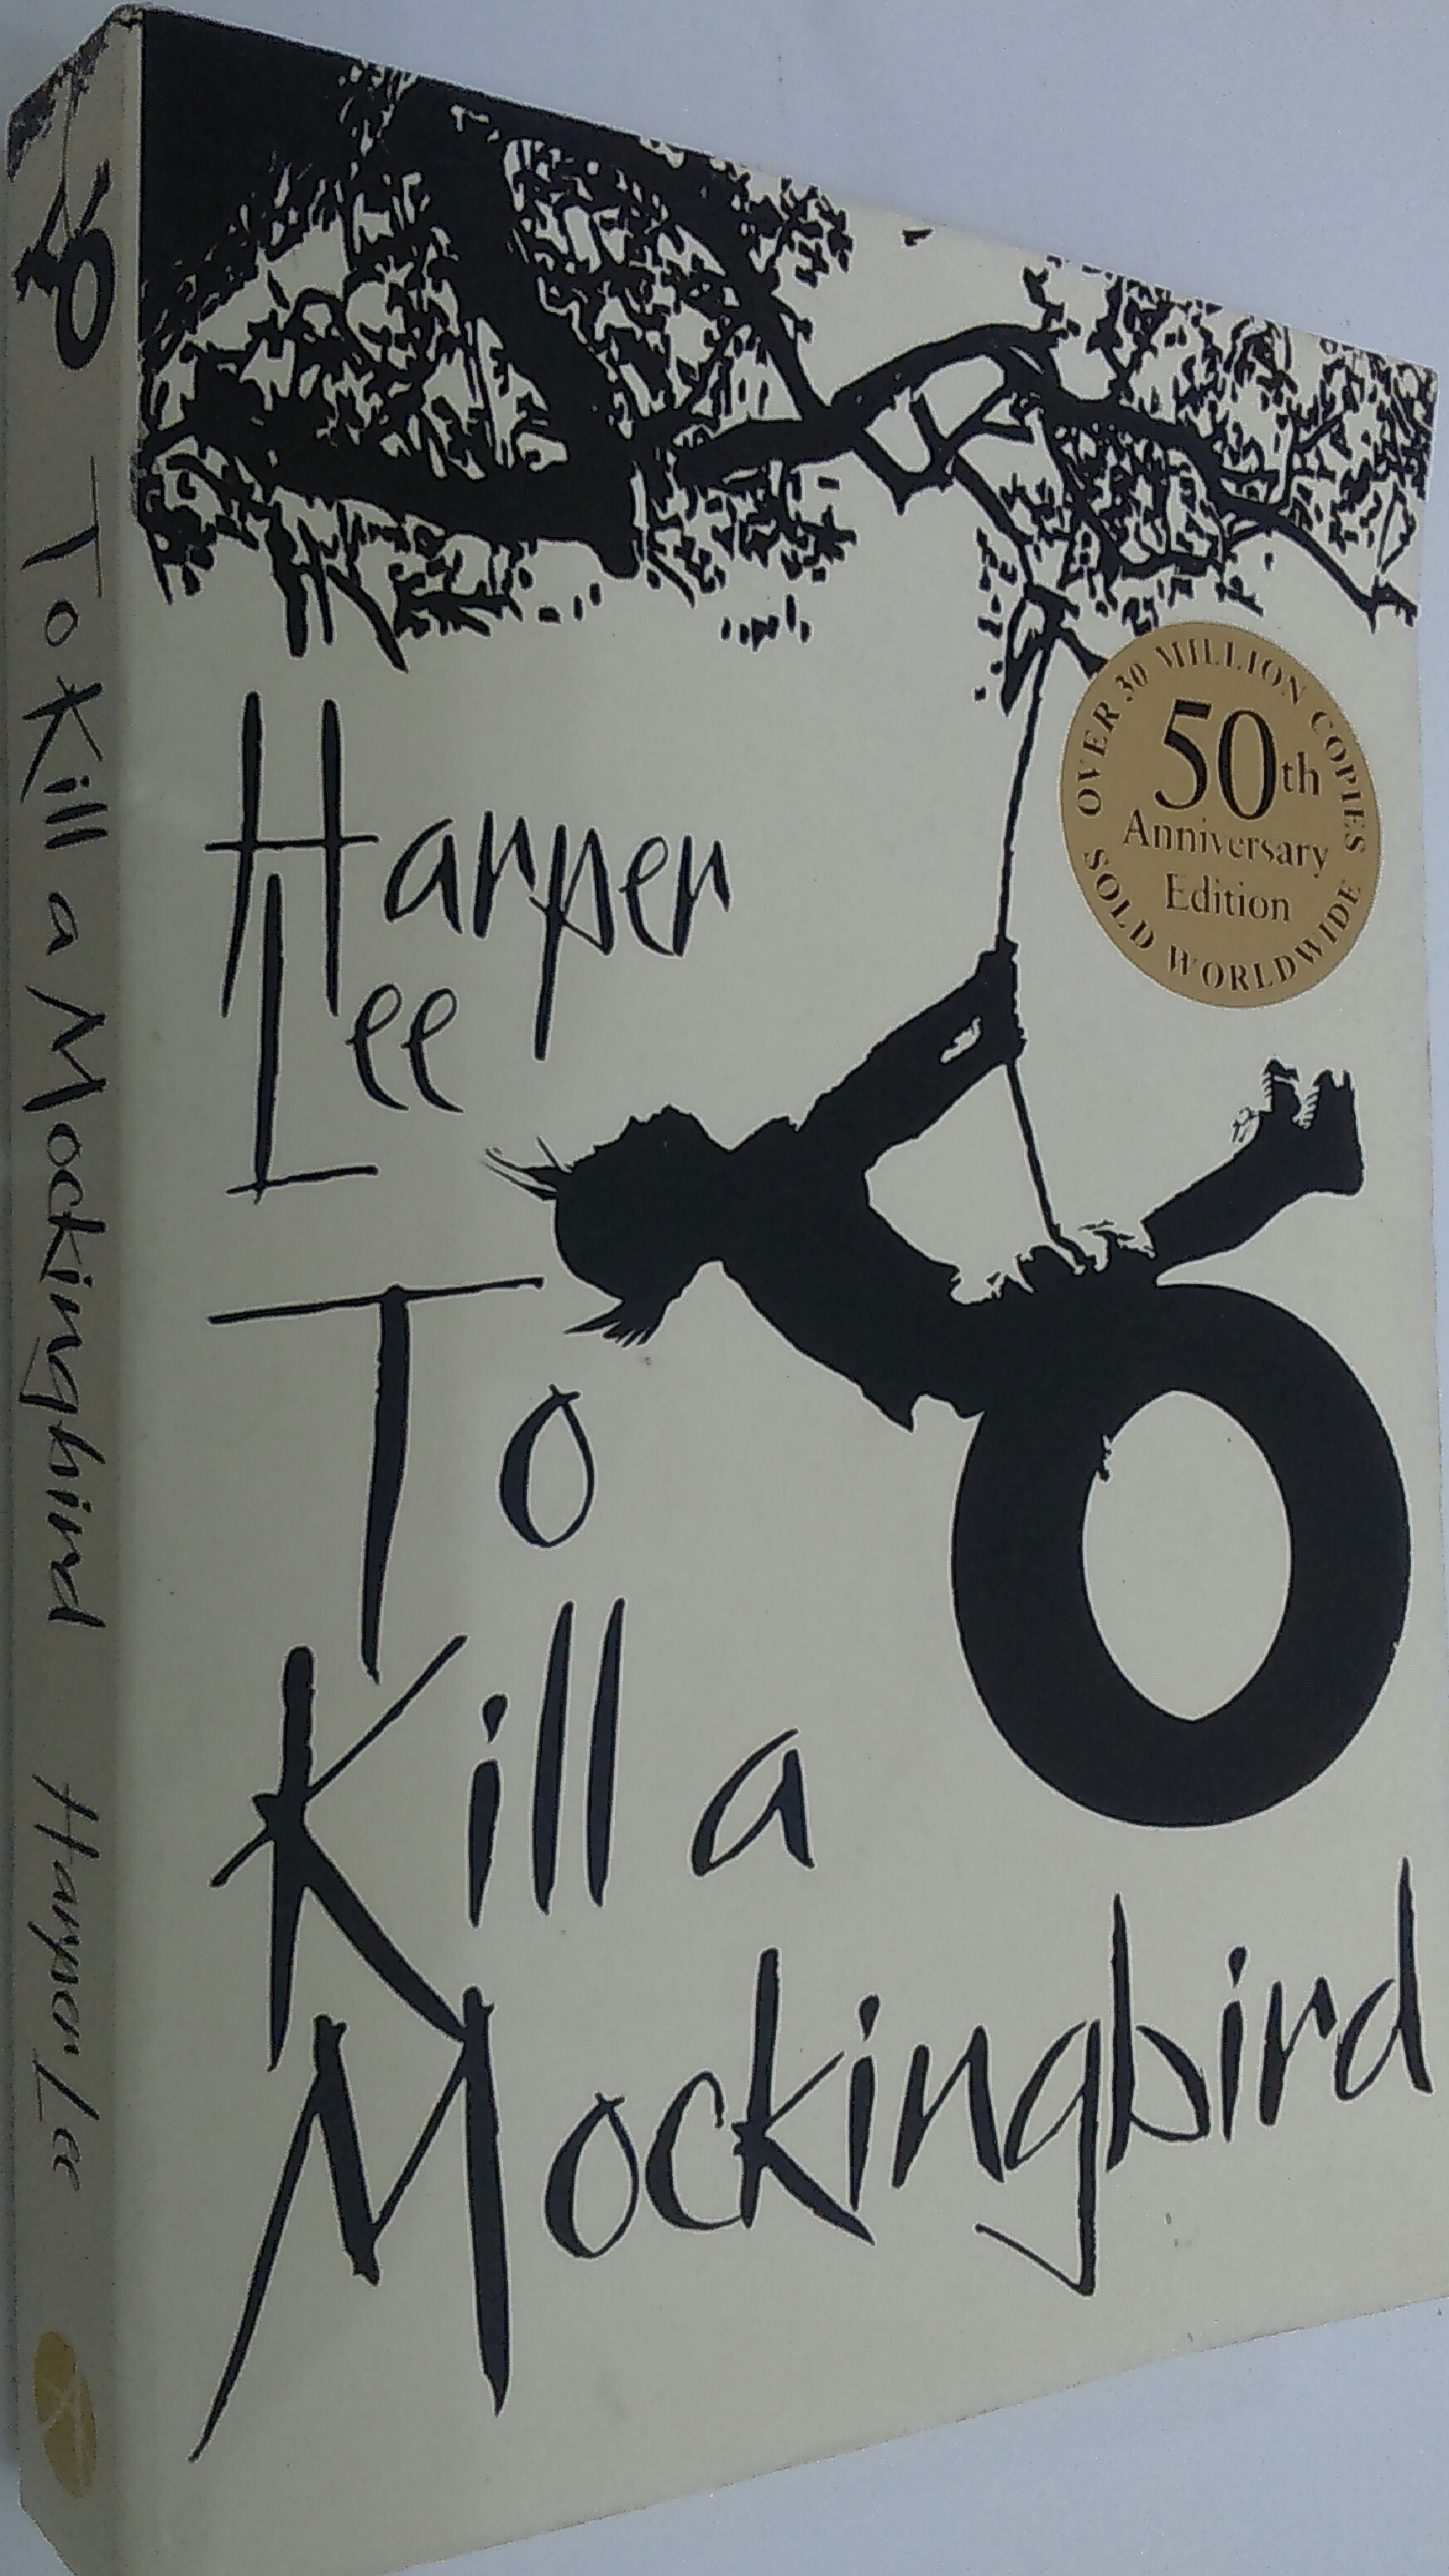 a response on to kill a mockingbird by harper lee A critical overview of to kill a mockingbird by harper lee, including historical reactions to the work and the author.